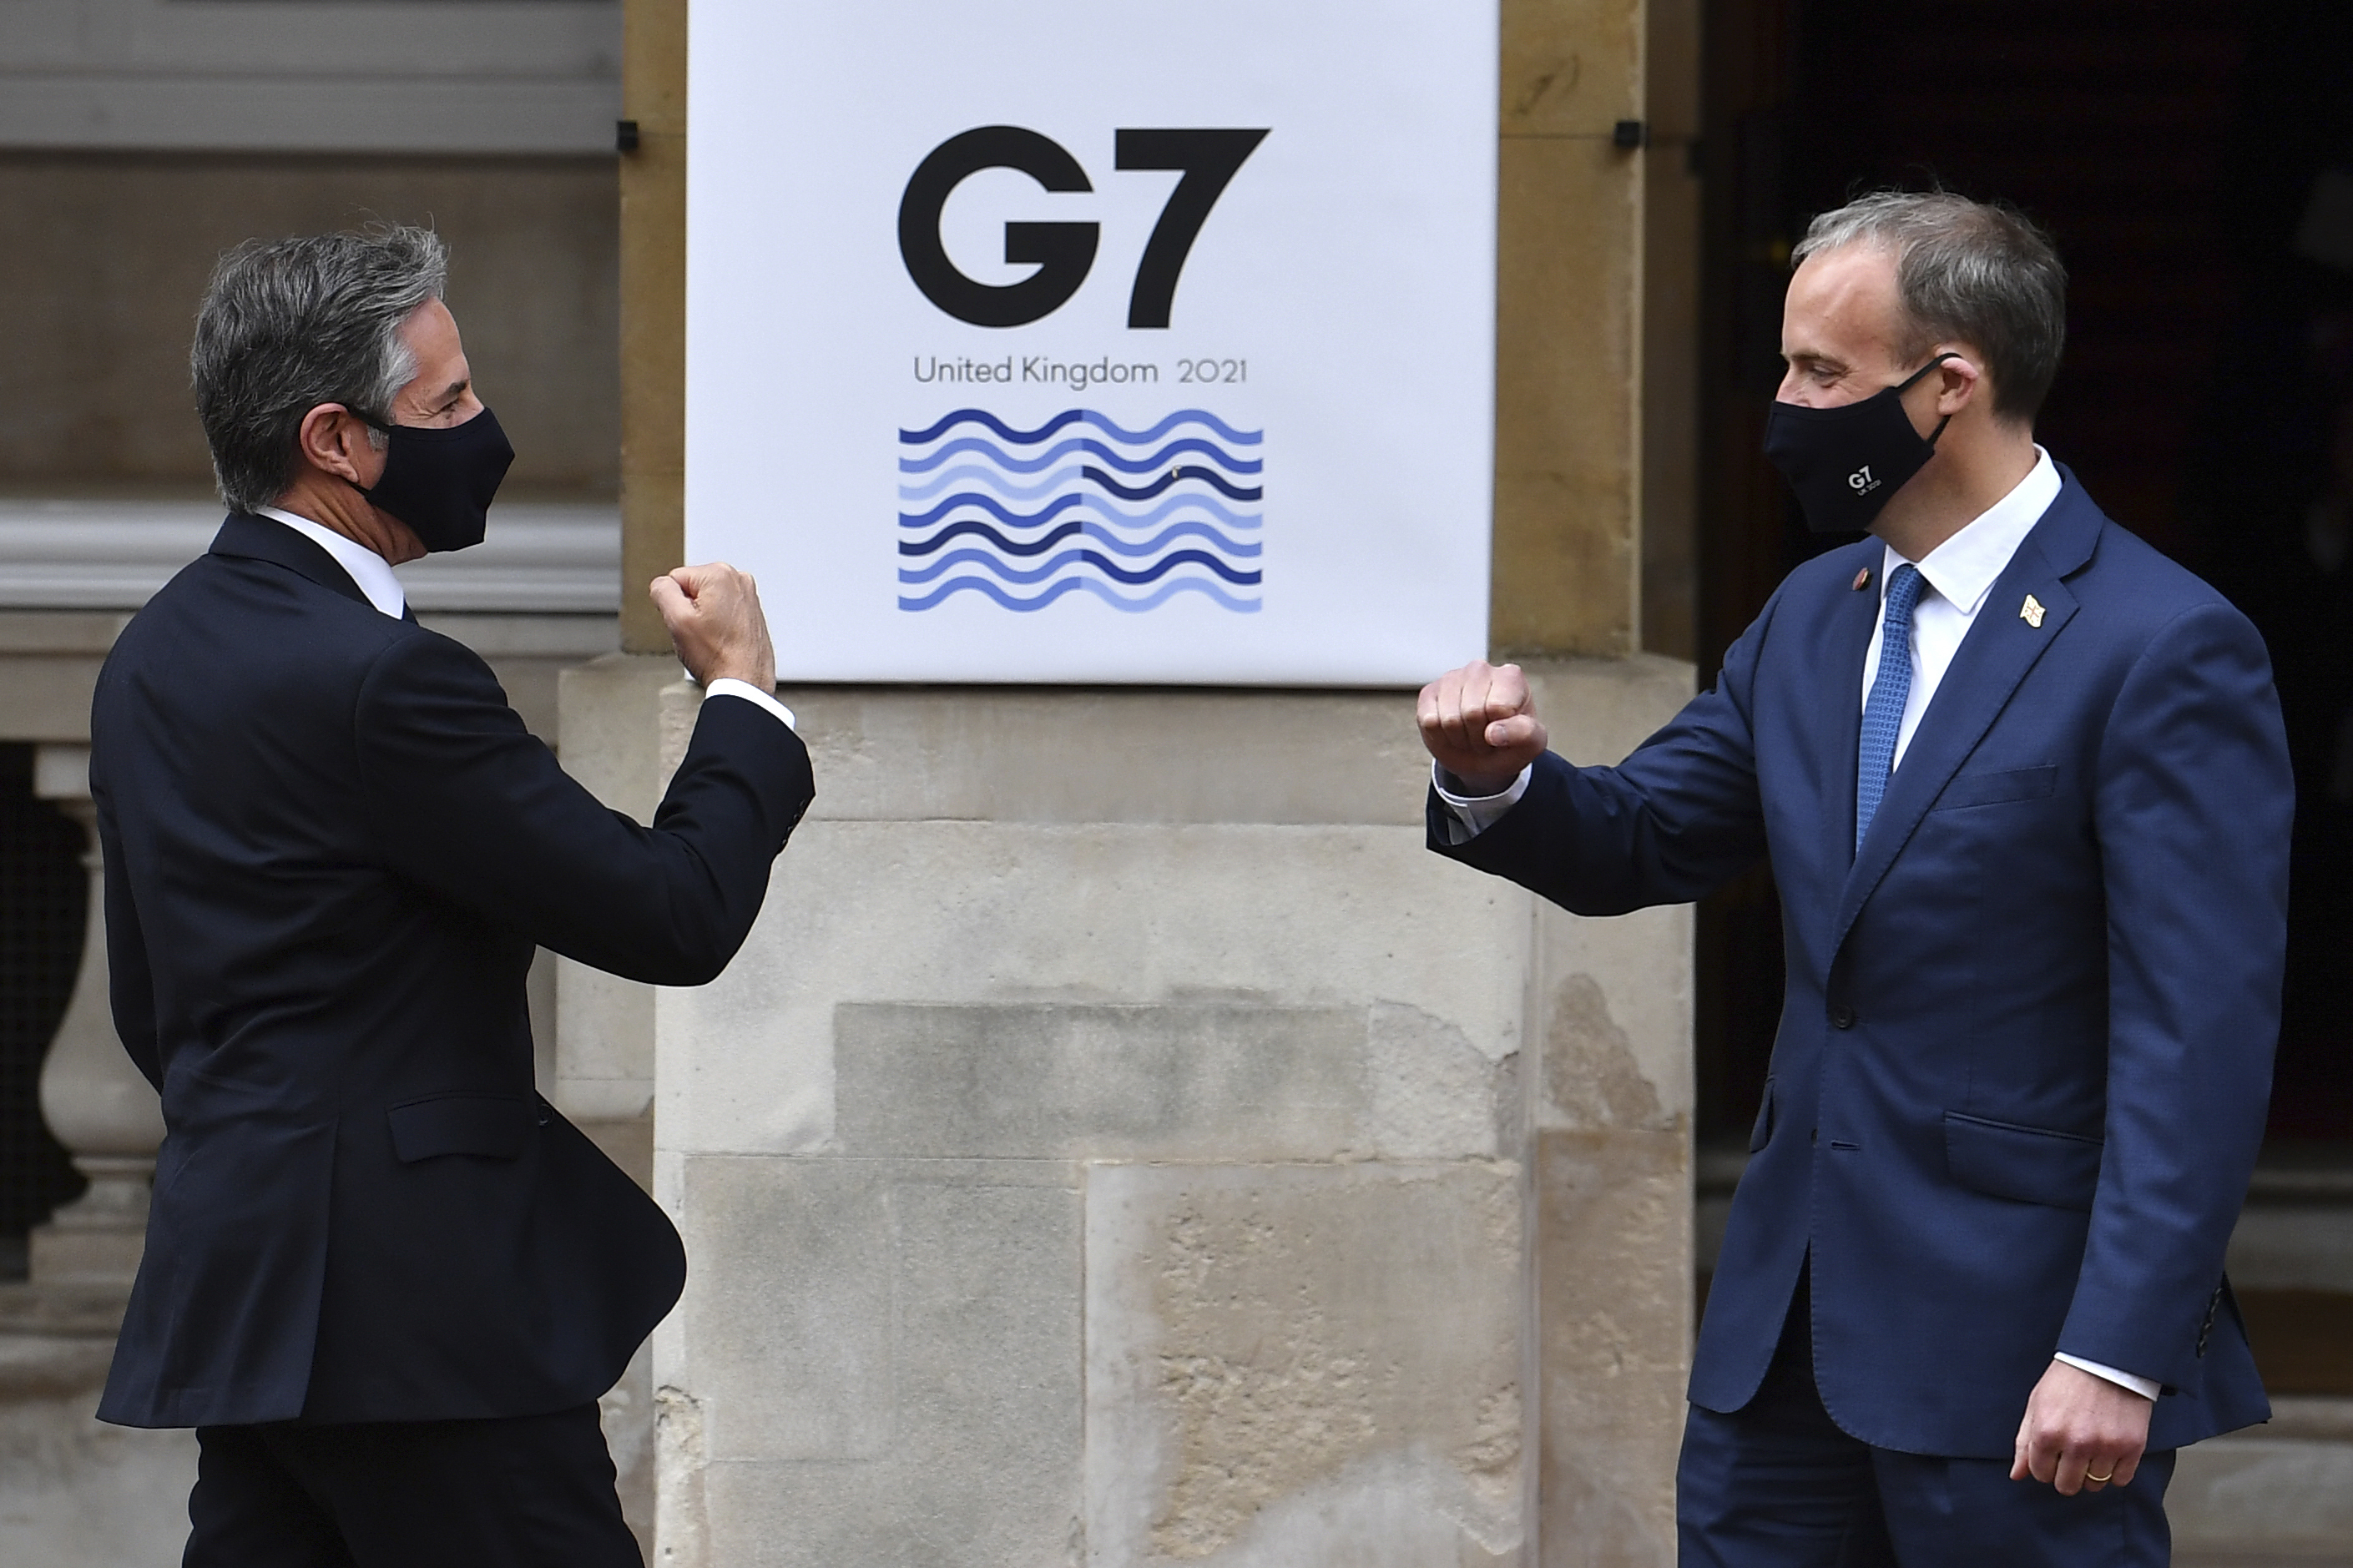 <p>US Secretary of State Antony Blinken, left, is greeted by Britain's Foreign Secretary Dominic Raab at the start of the G7 foreign ministers meeting in London Tuesday May 4, 2021.  G7 foreign ministers meet in London Tuesday for their first face-to-face talks in more than two years. (Ben Stansall / Pool via AP)</p>